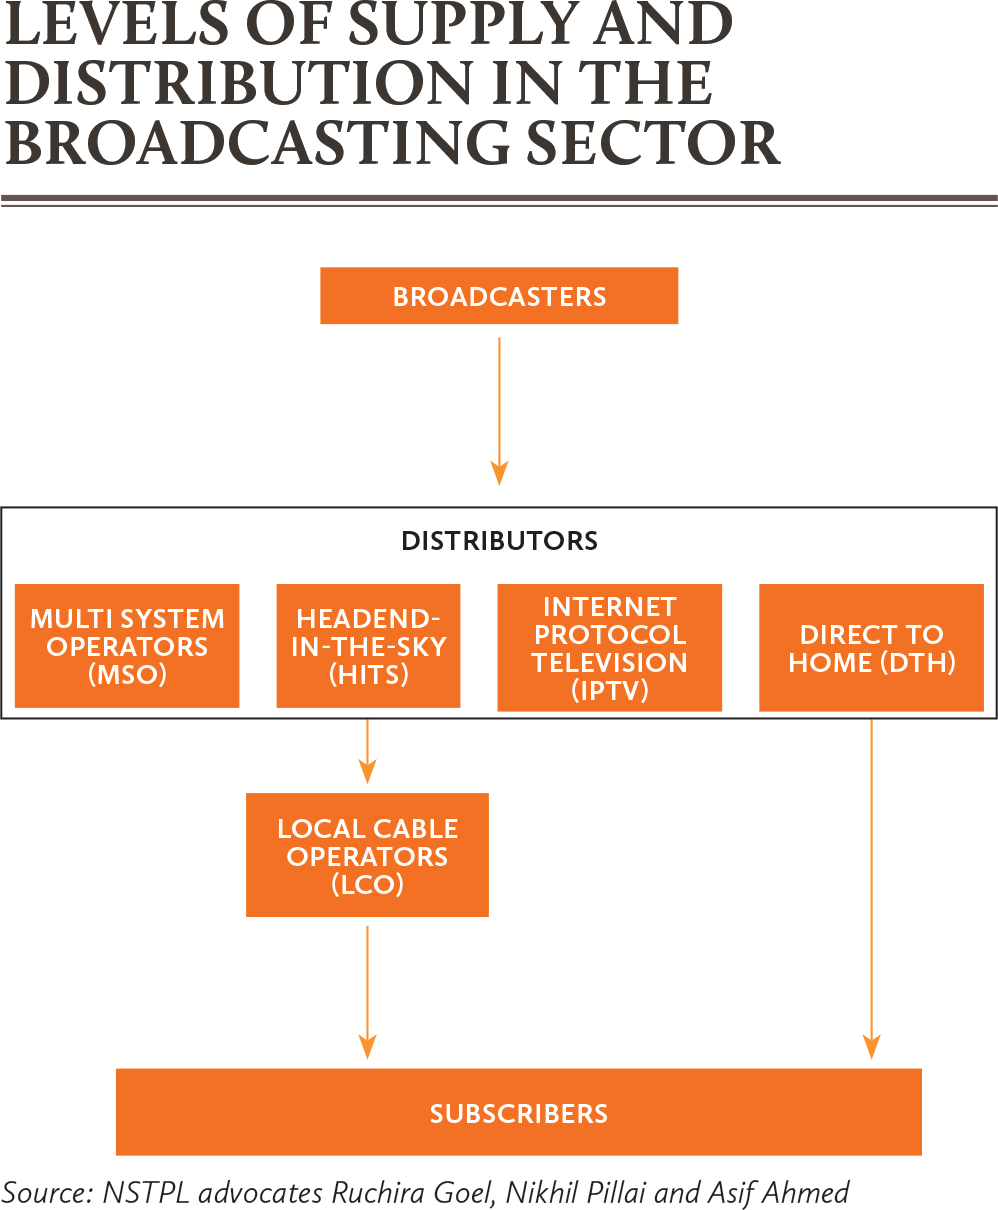 Levels-of-supply-and-distribution-in-the-broadcasting-sector